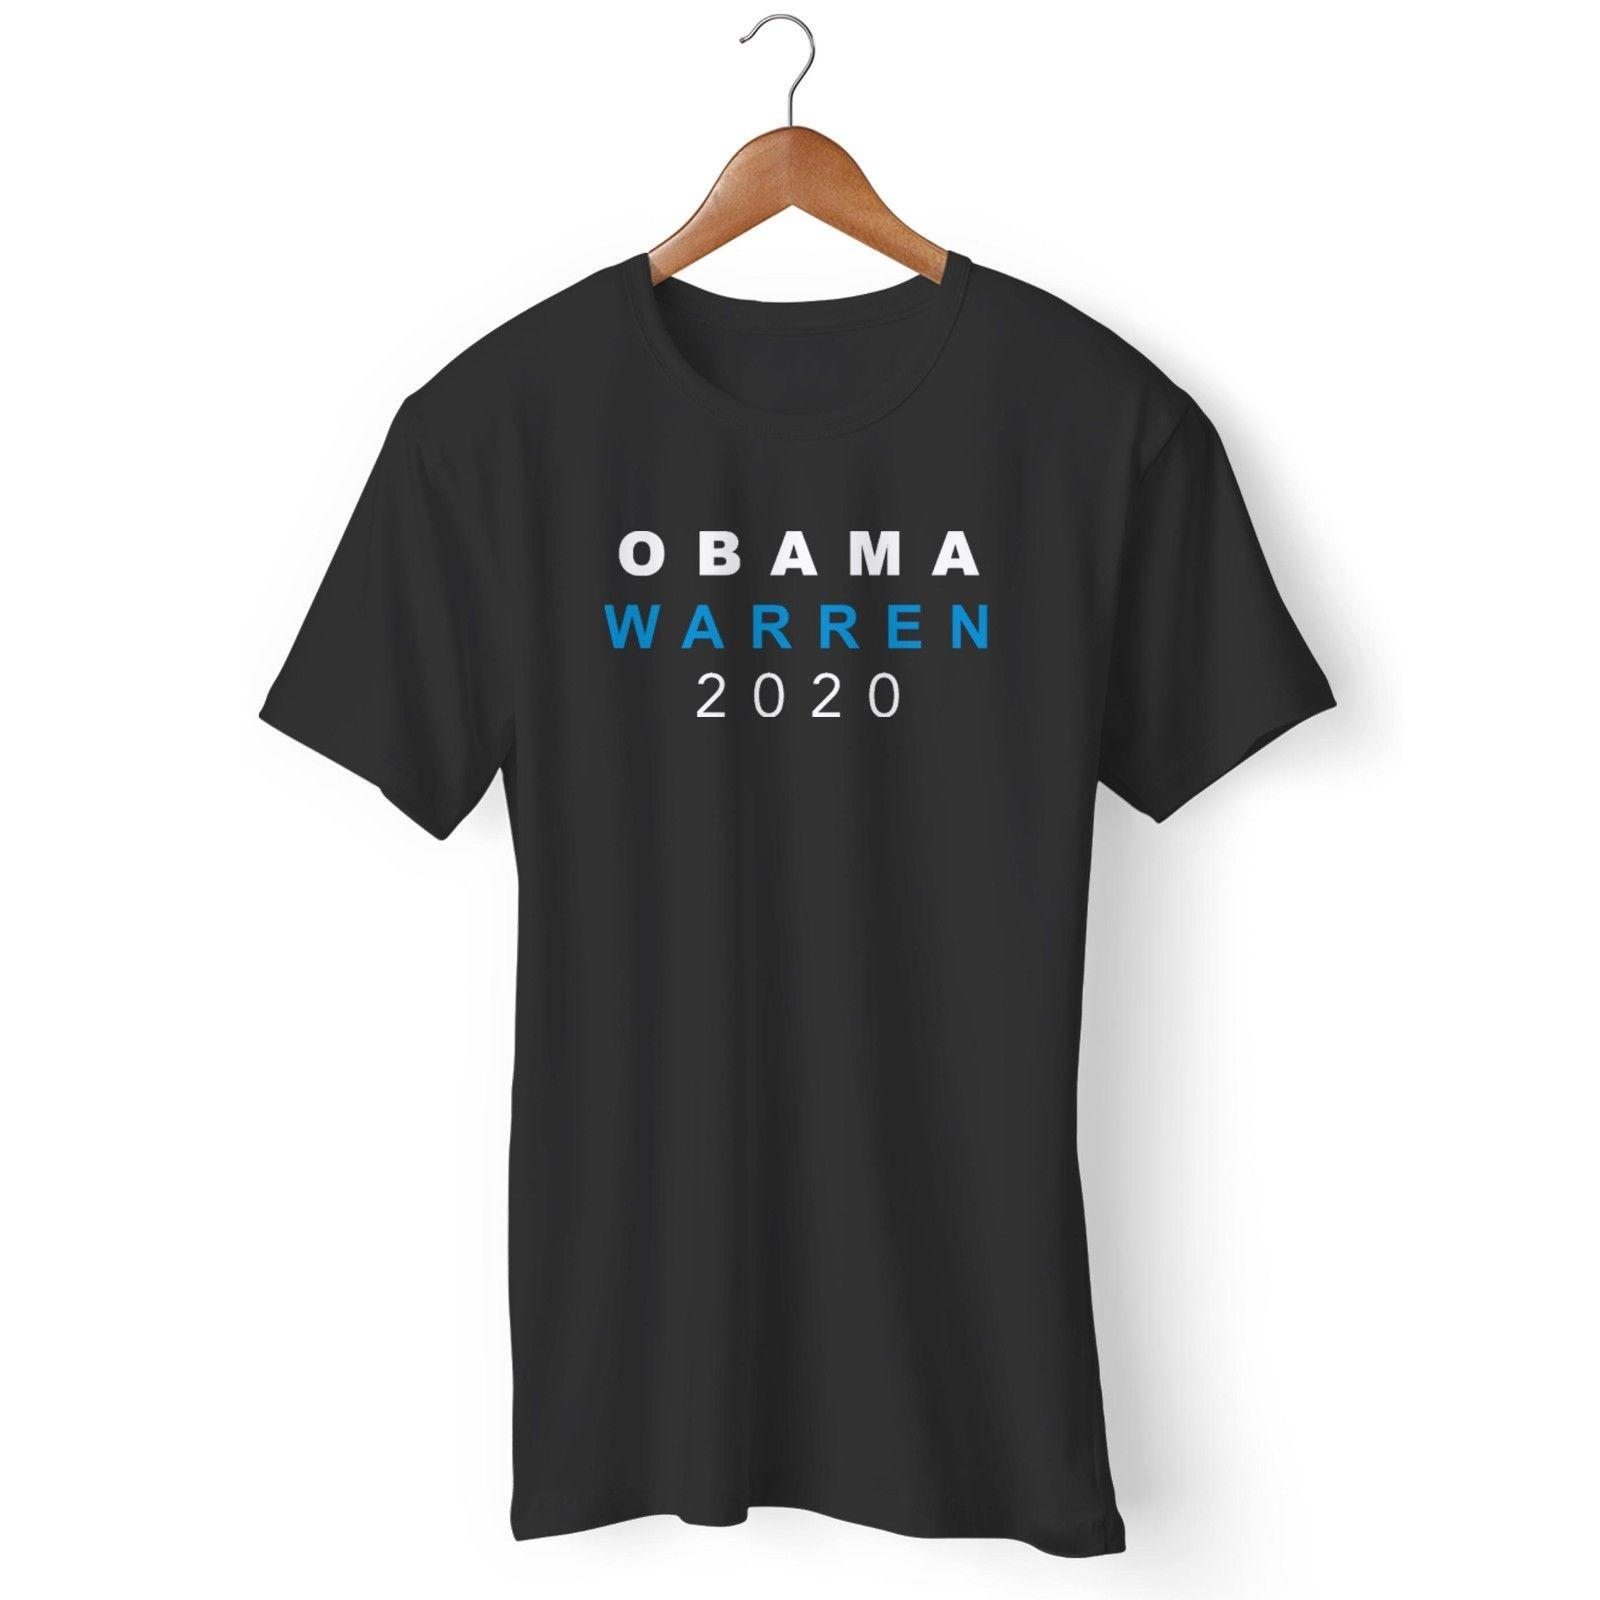 e729c22f Michelle Obama & Elizabeth Warren For President 2020 Man'S / Woman'S T Shirt  Funny Unisex Casual Tee Gift Top Awesome Shirts For Men The T Shirts From  ...